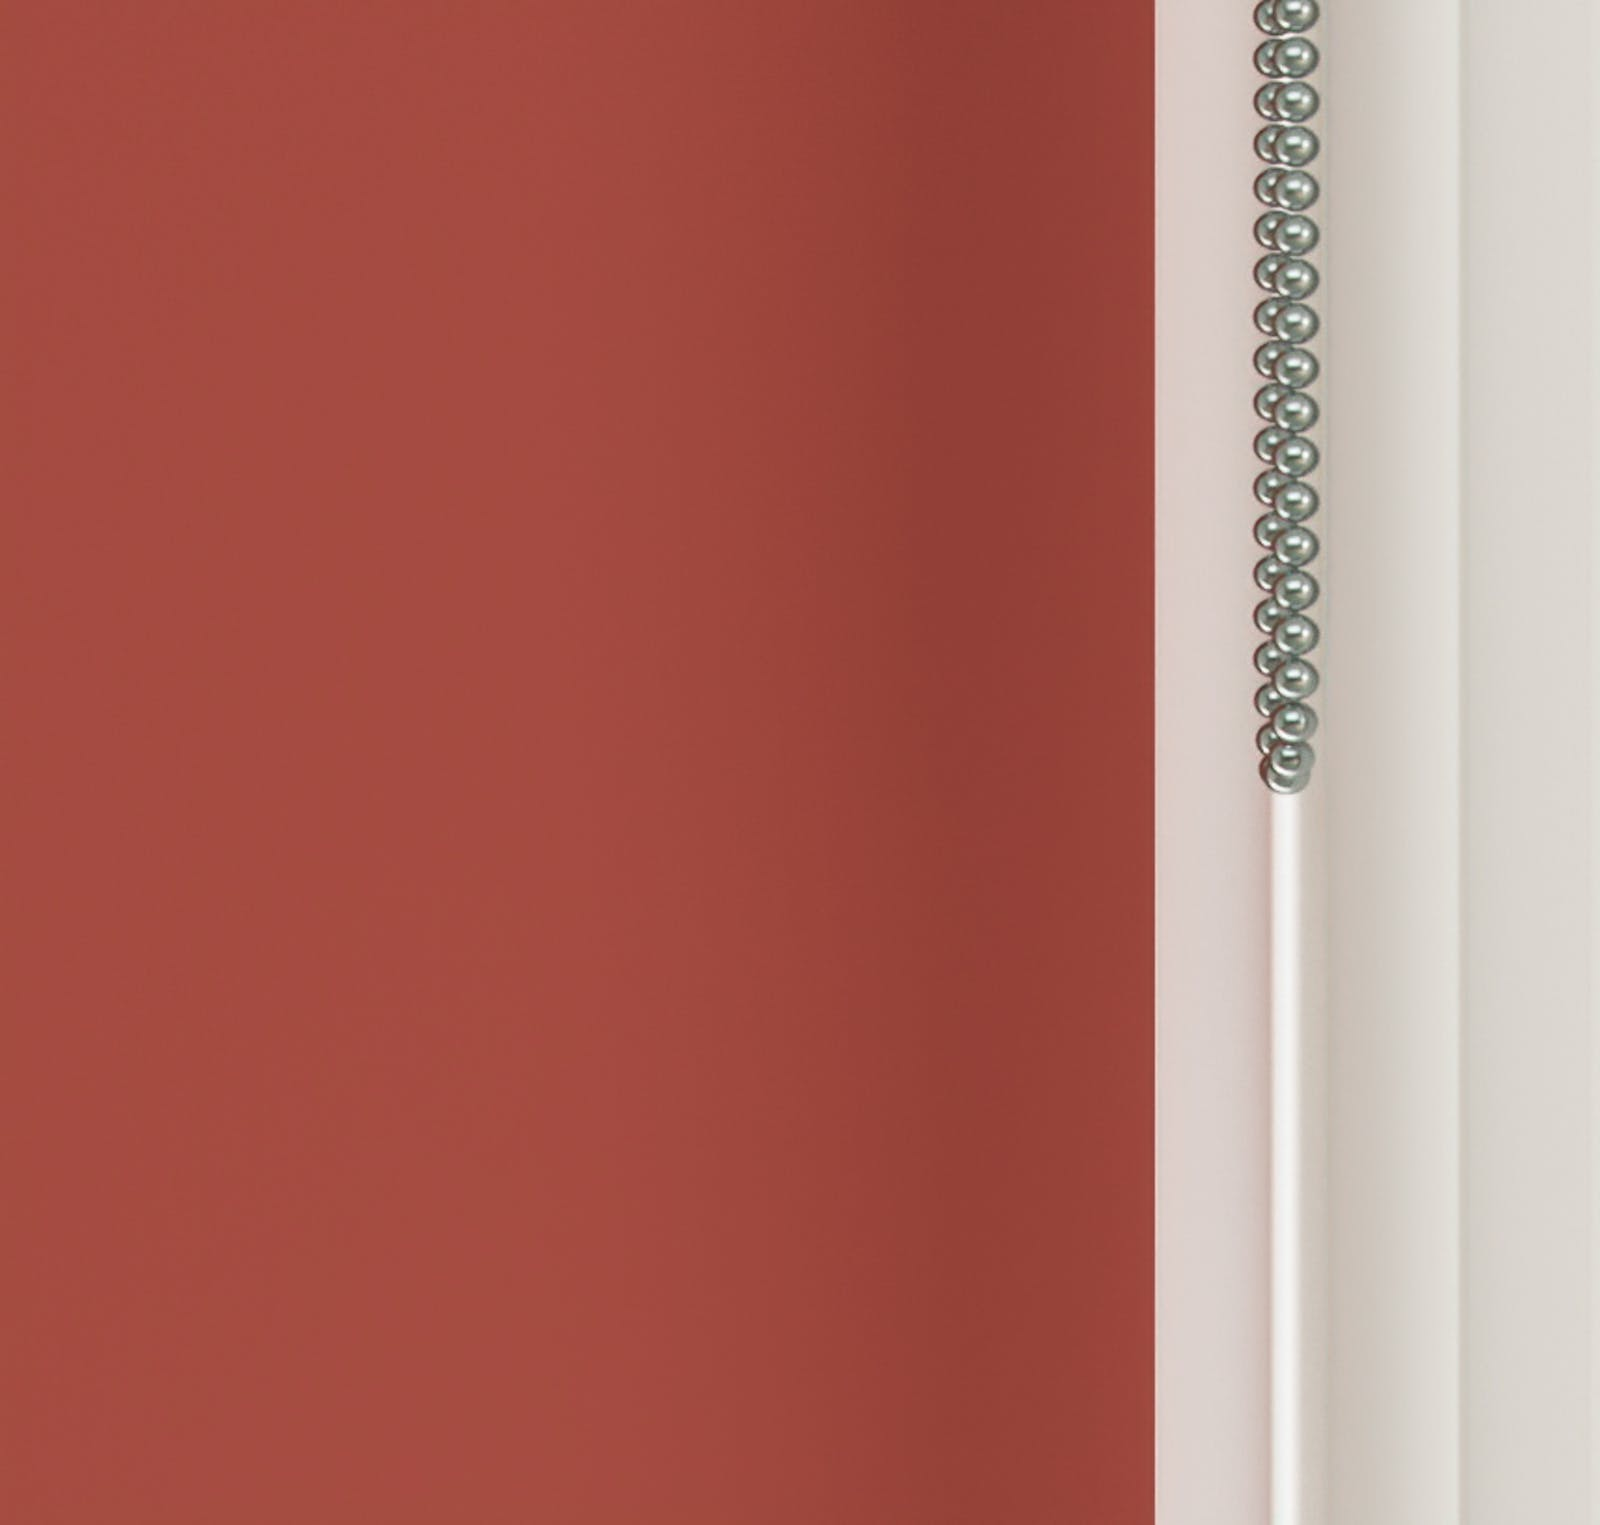 Close up view of Lick Red 02 roller blinds